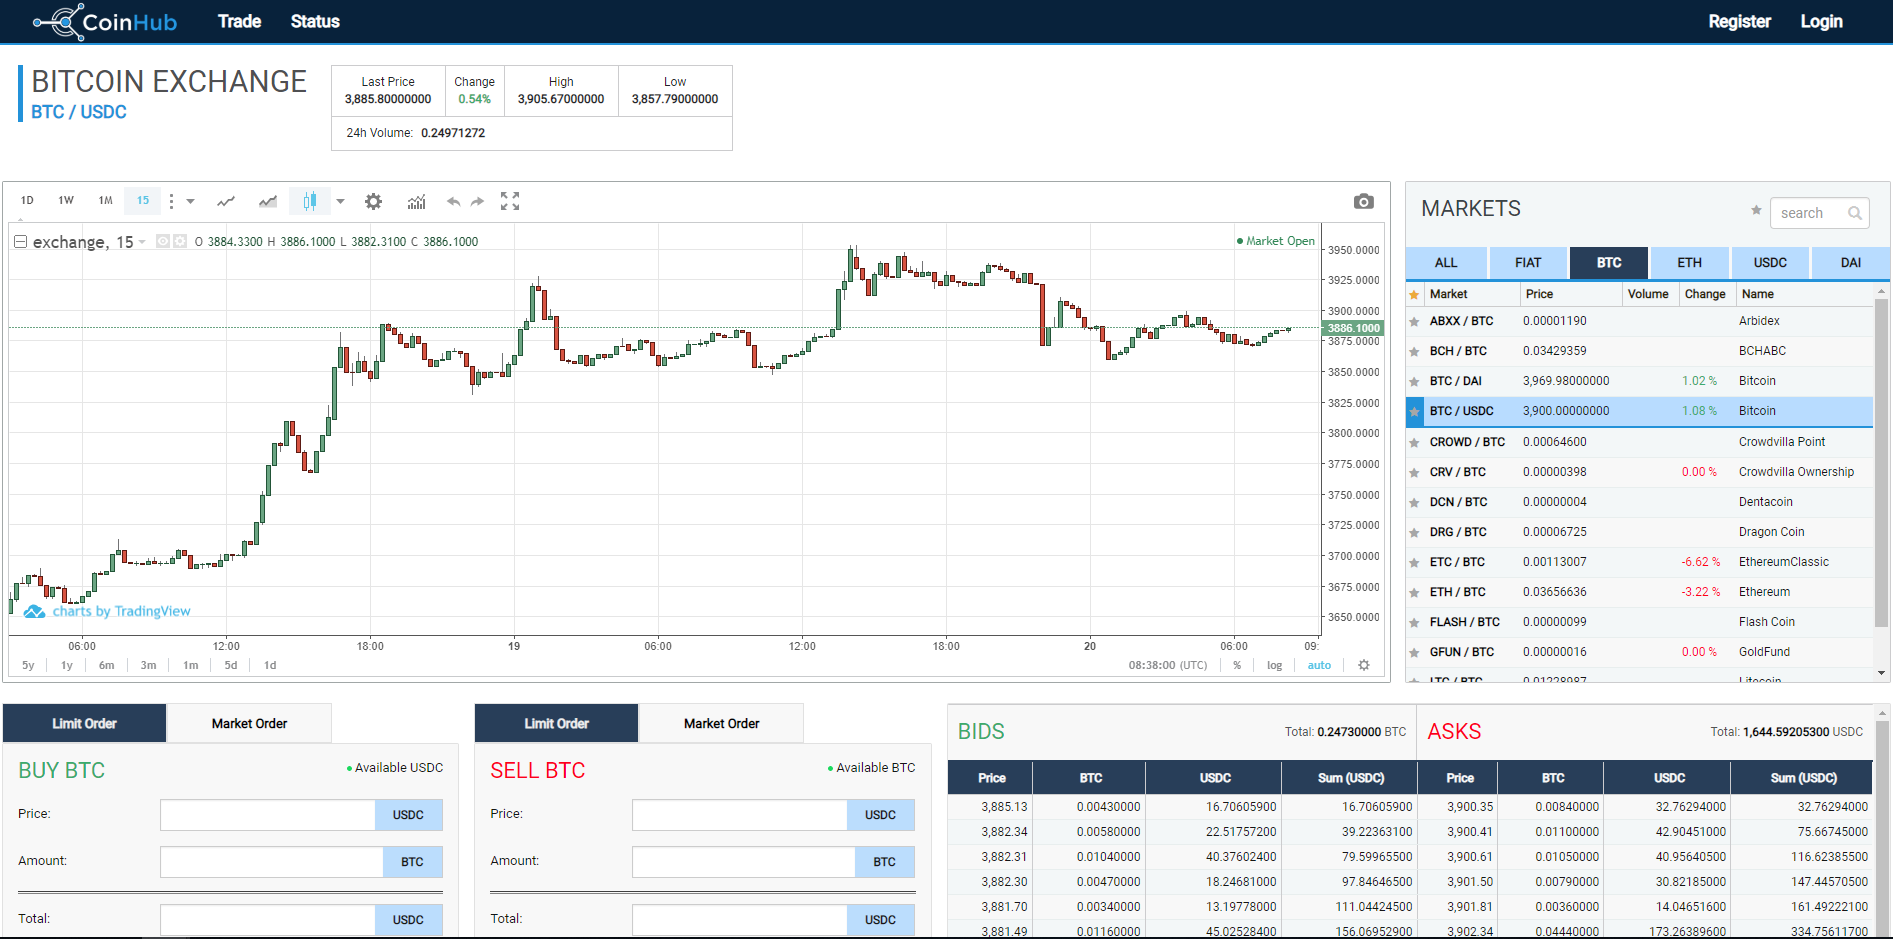 Coinhub Trading View